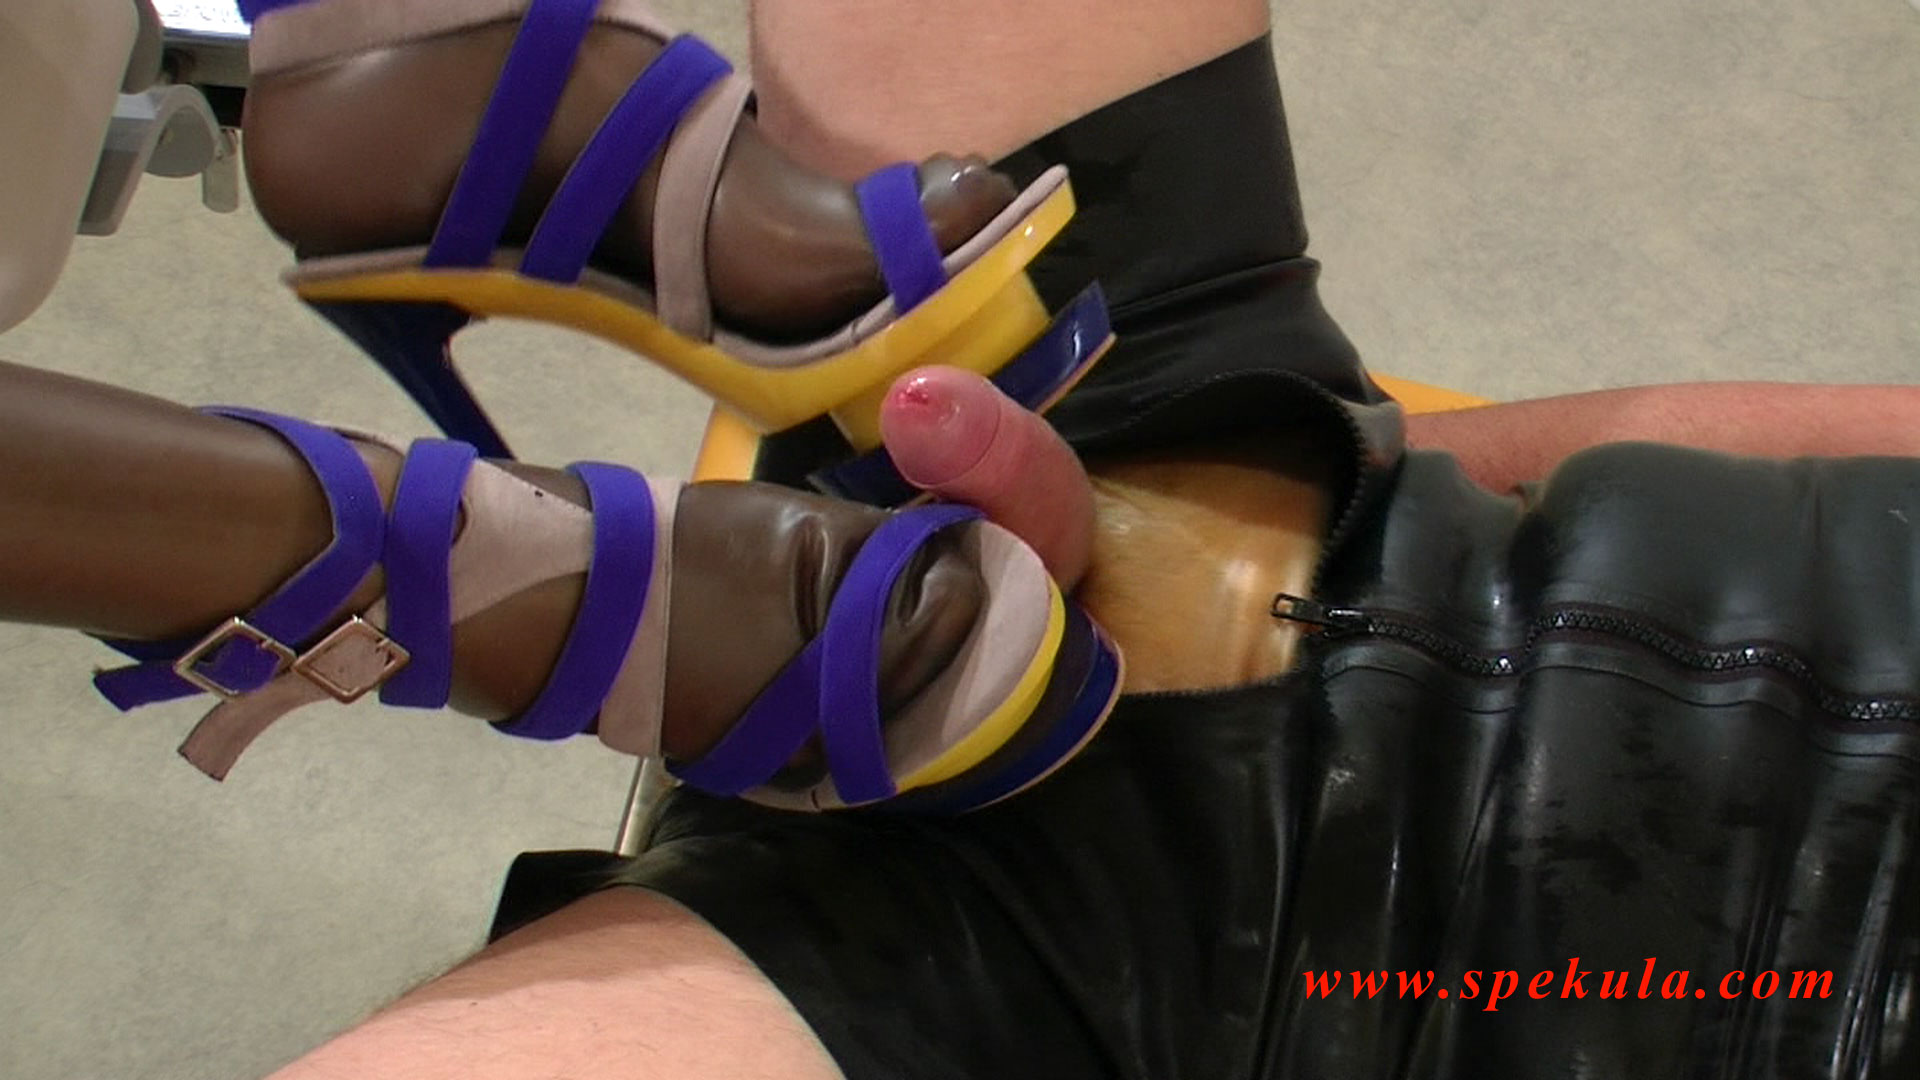 Squirting Sperma auf High Heels